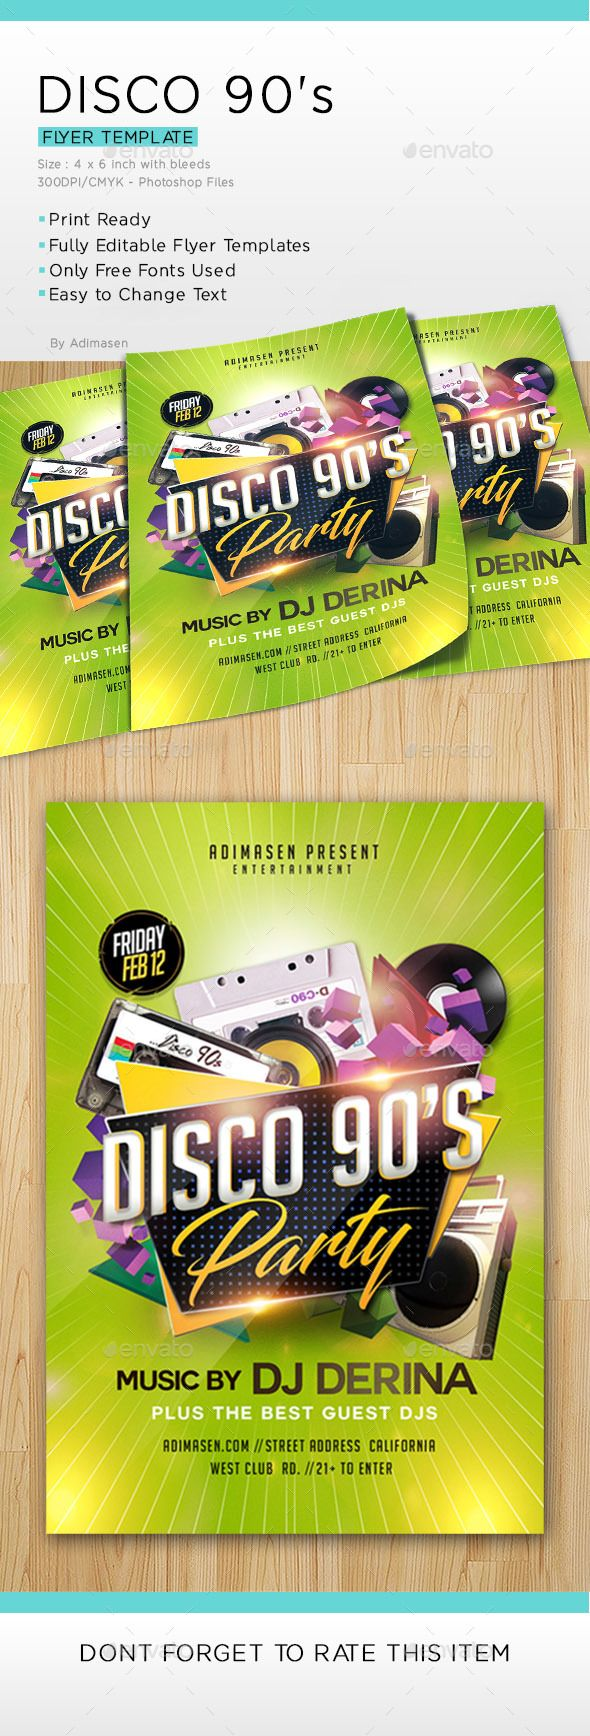 Disco 90 S Party Clubs Parties Events Download Here Https Graphicriver Net Item Disco 90s Party 19578149 Ref Alena994 90s Party Party Flyer Disco